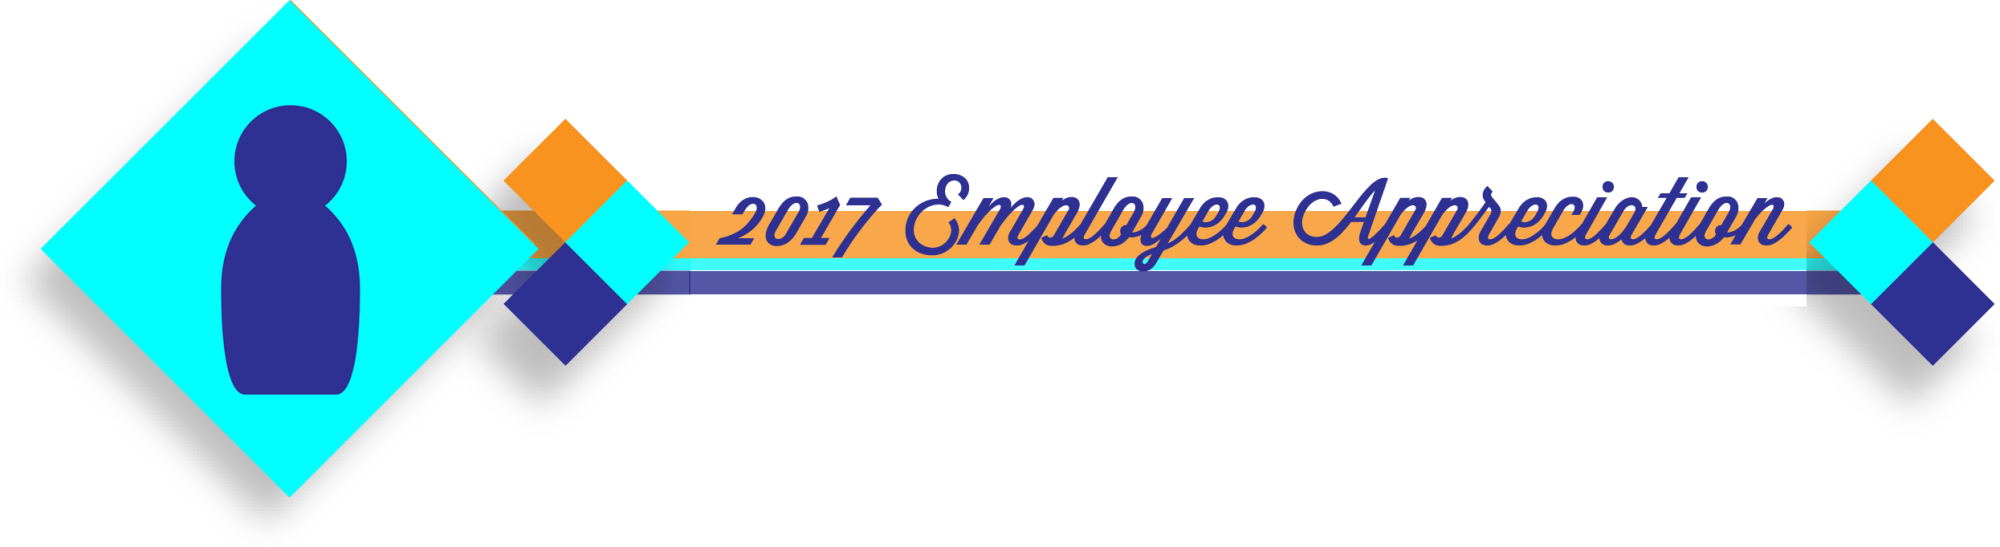 2017 employee appreciation banner